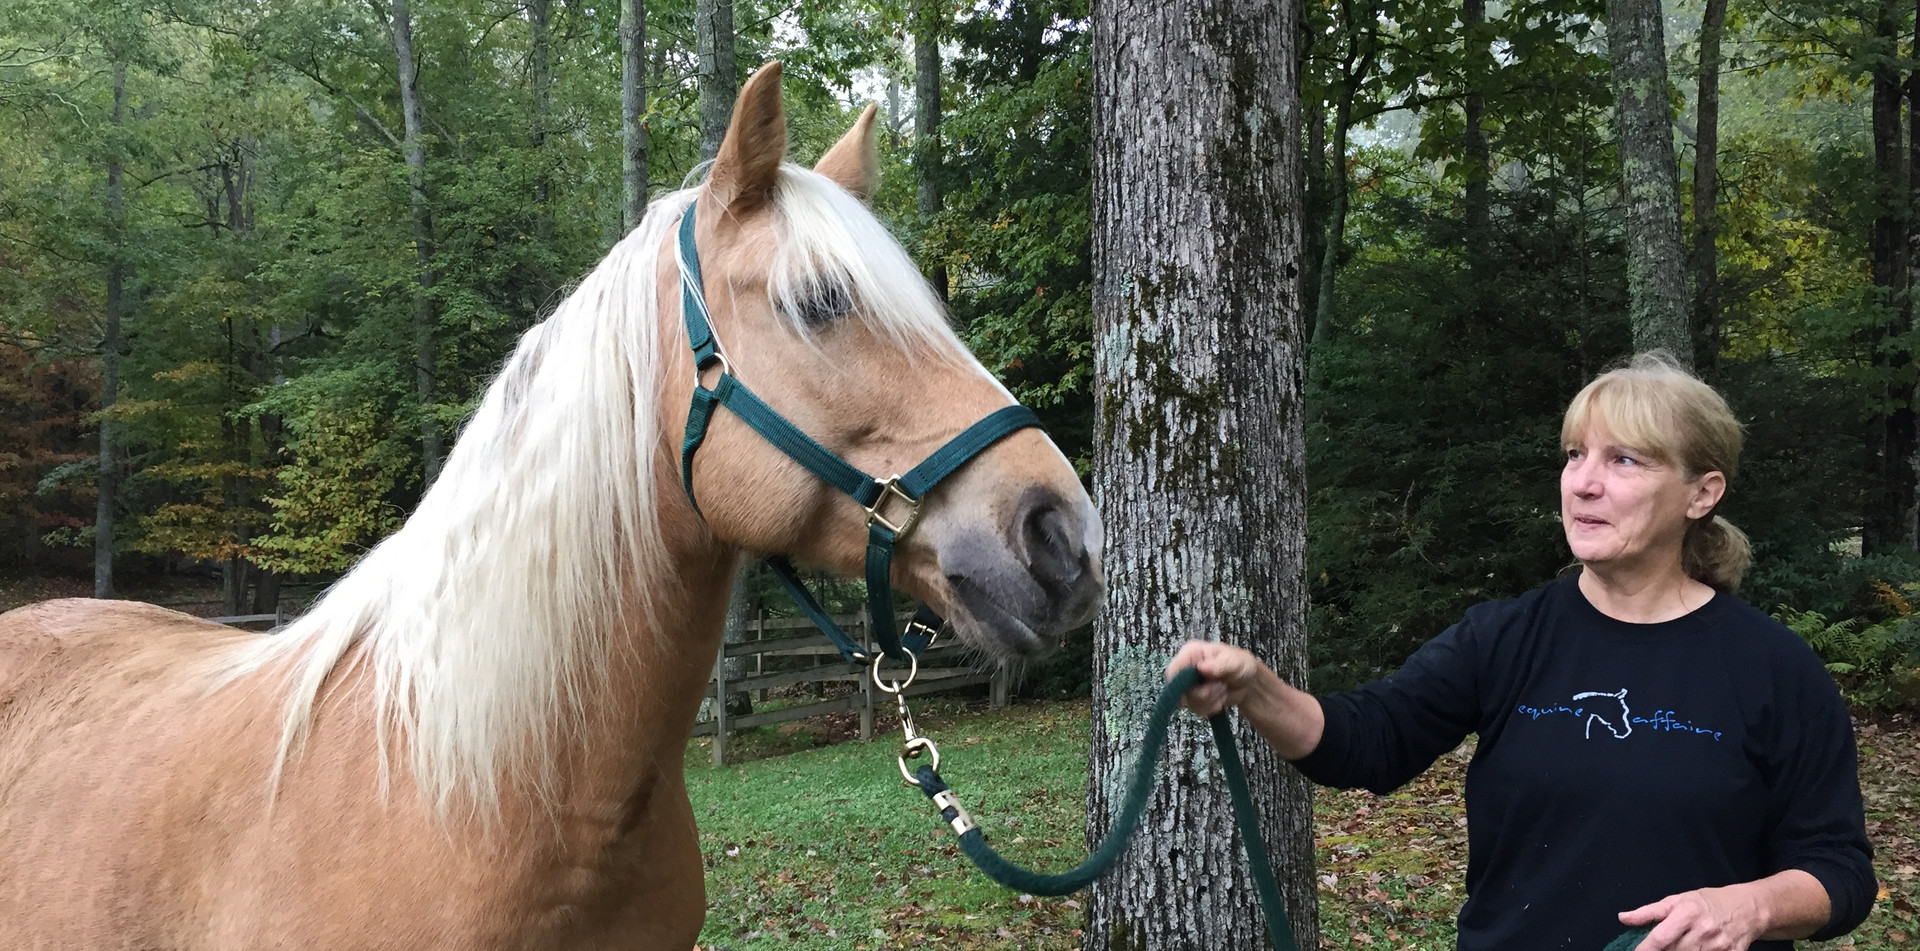 The equestrian center offers a seasonal live-in stable keeper. If you are interested in bringing your horse, please inquire with us for information and pricing.